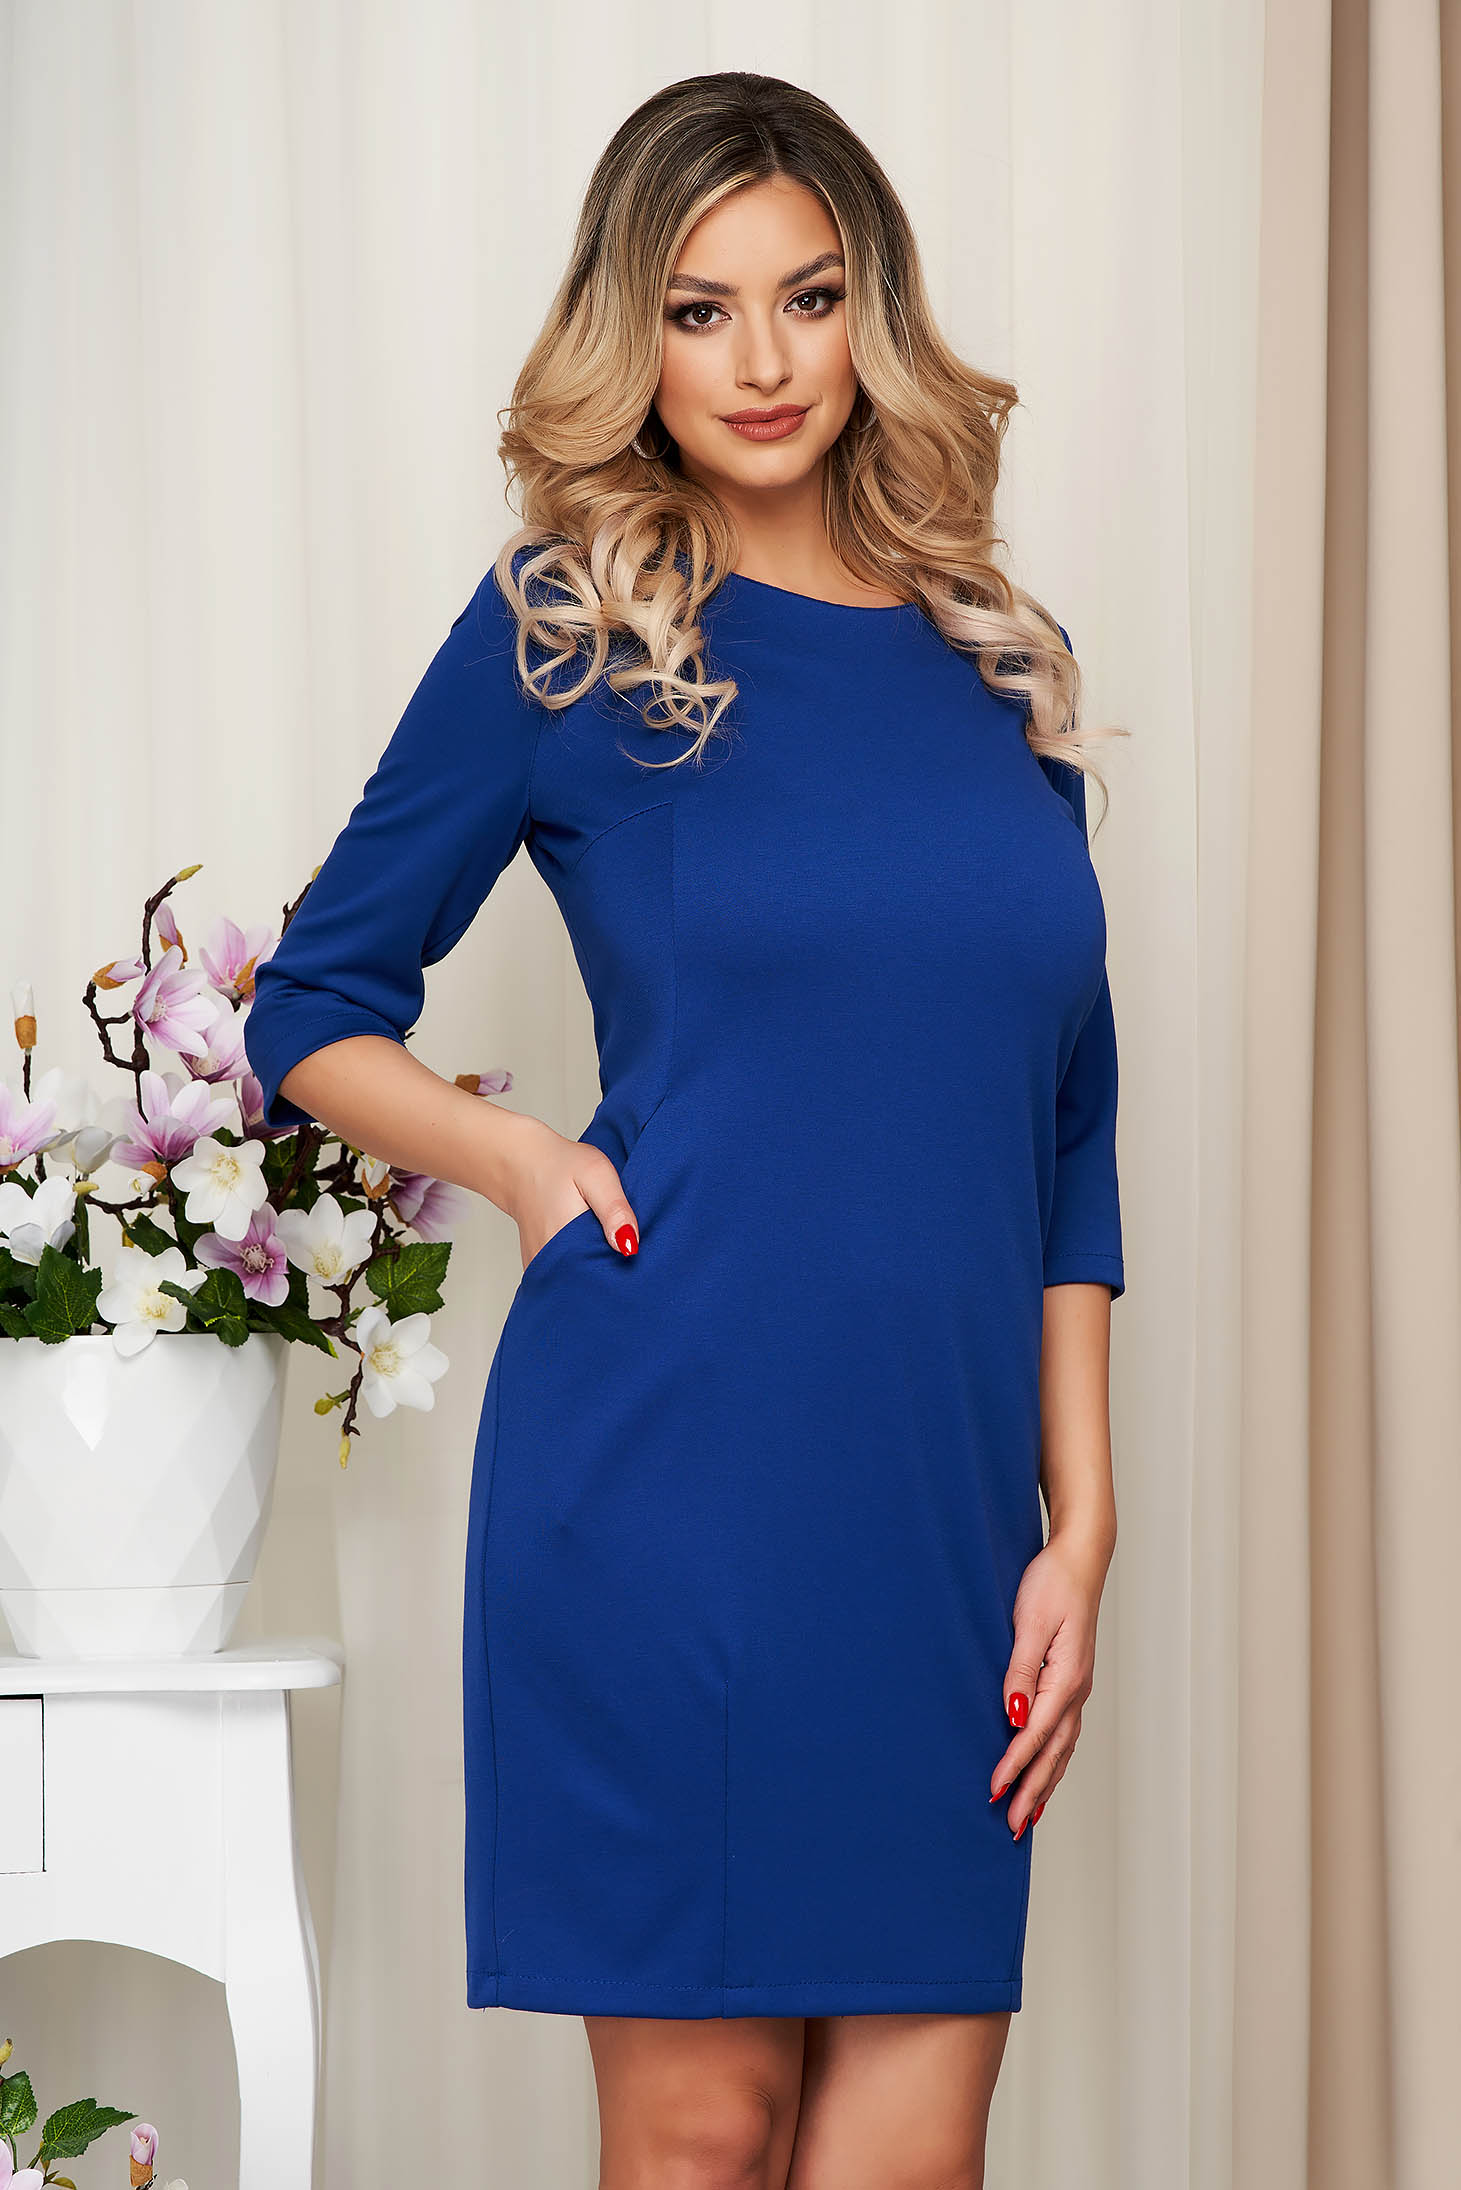 Dress office slightly elastic fabric straight with pockets